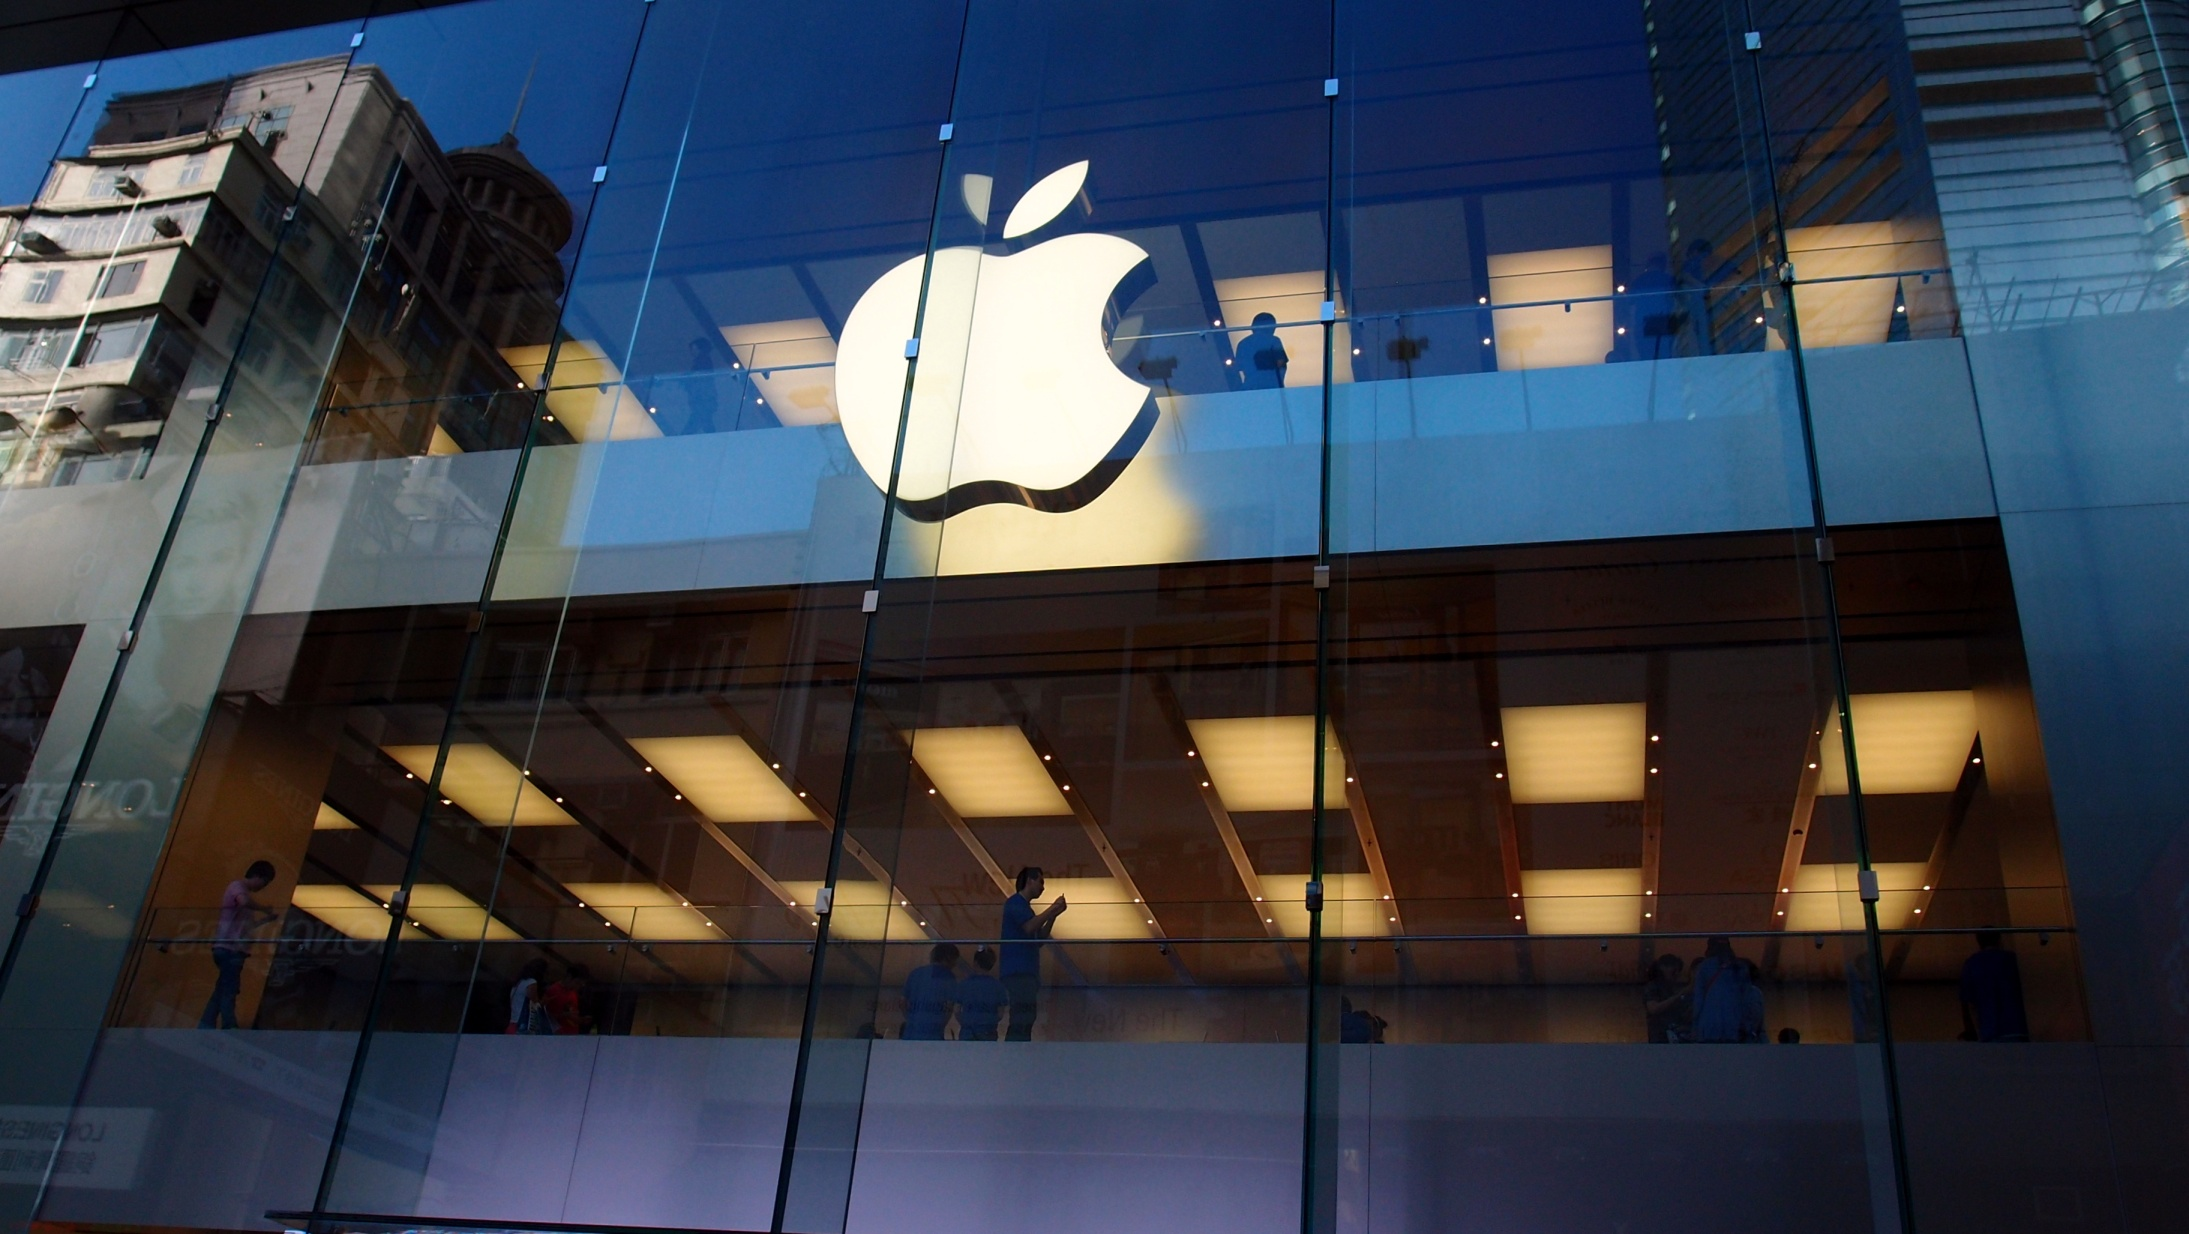 The Apple store in Causeway Bay